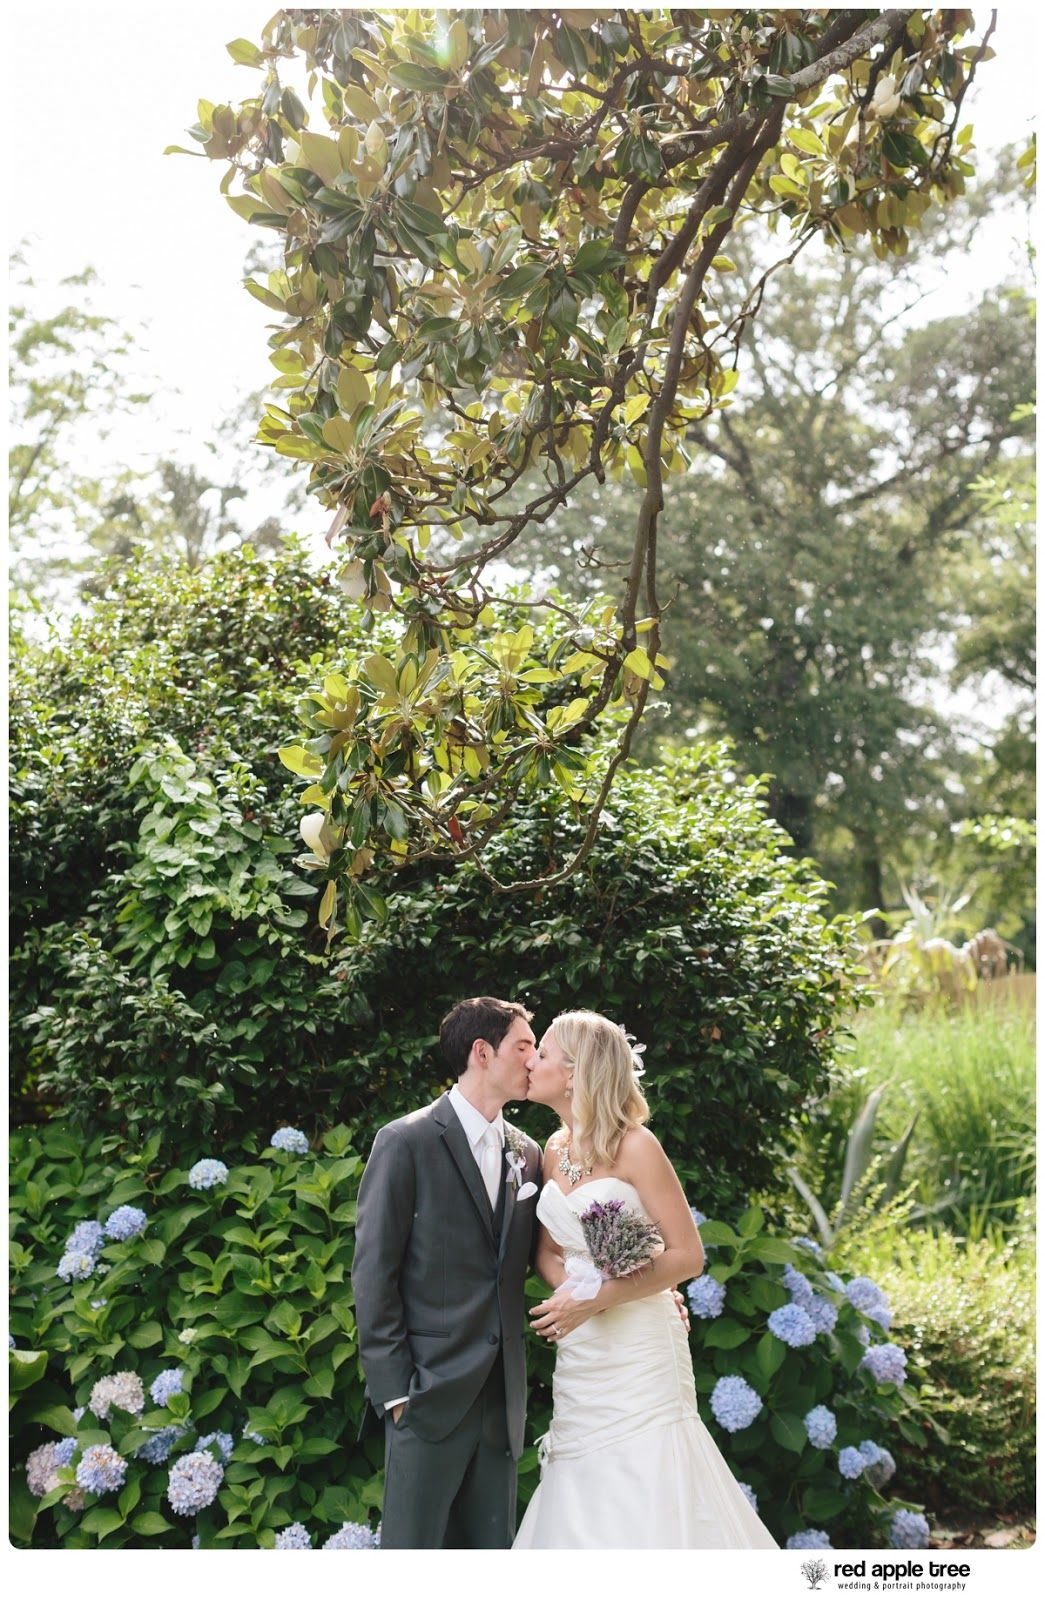 Red Le Tree Photography Seibels House Garden Wedding Columbia Sc With Shana